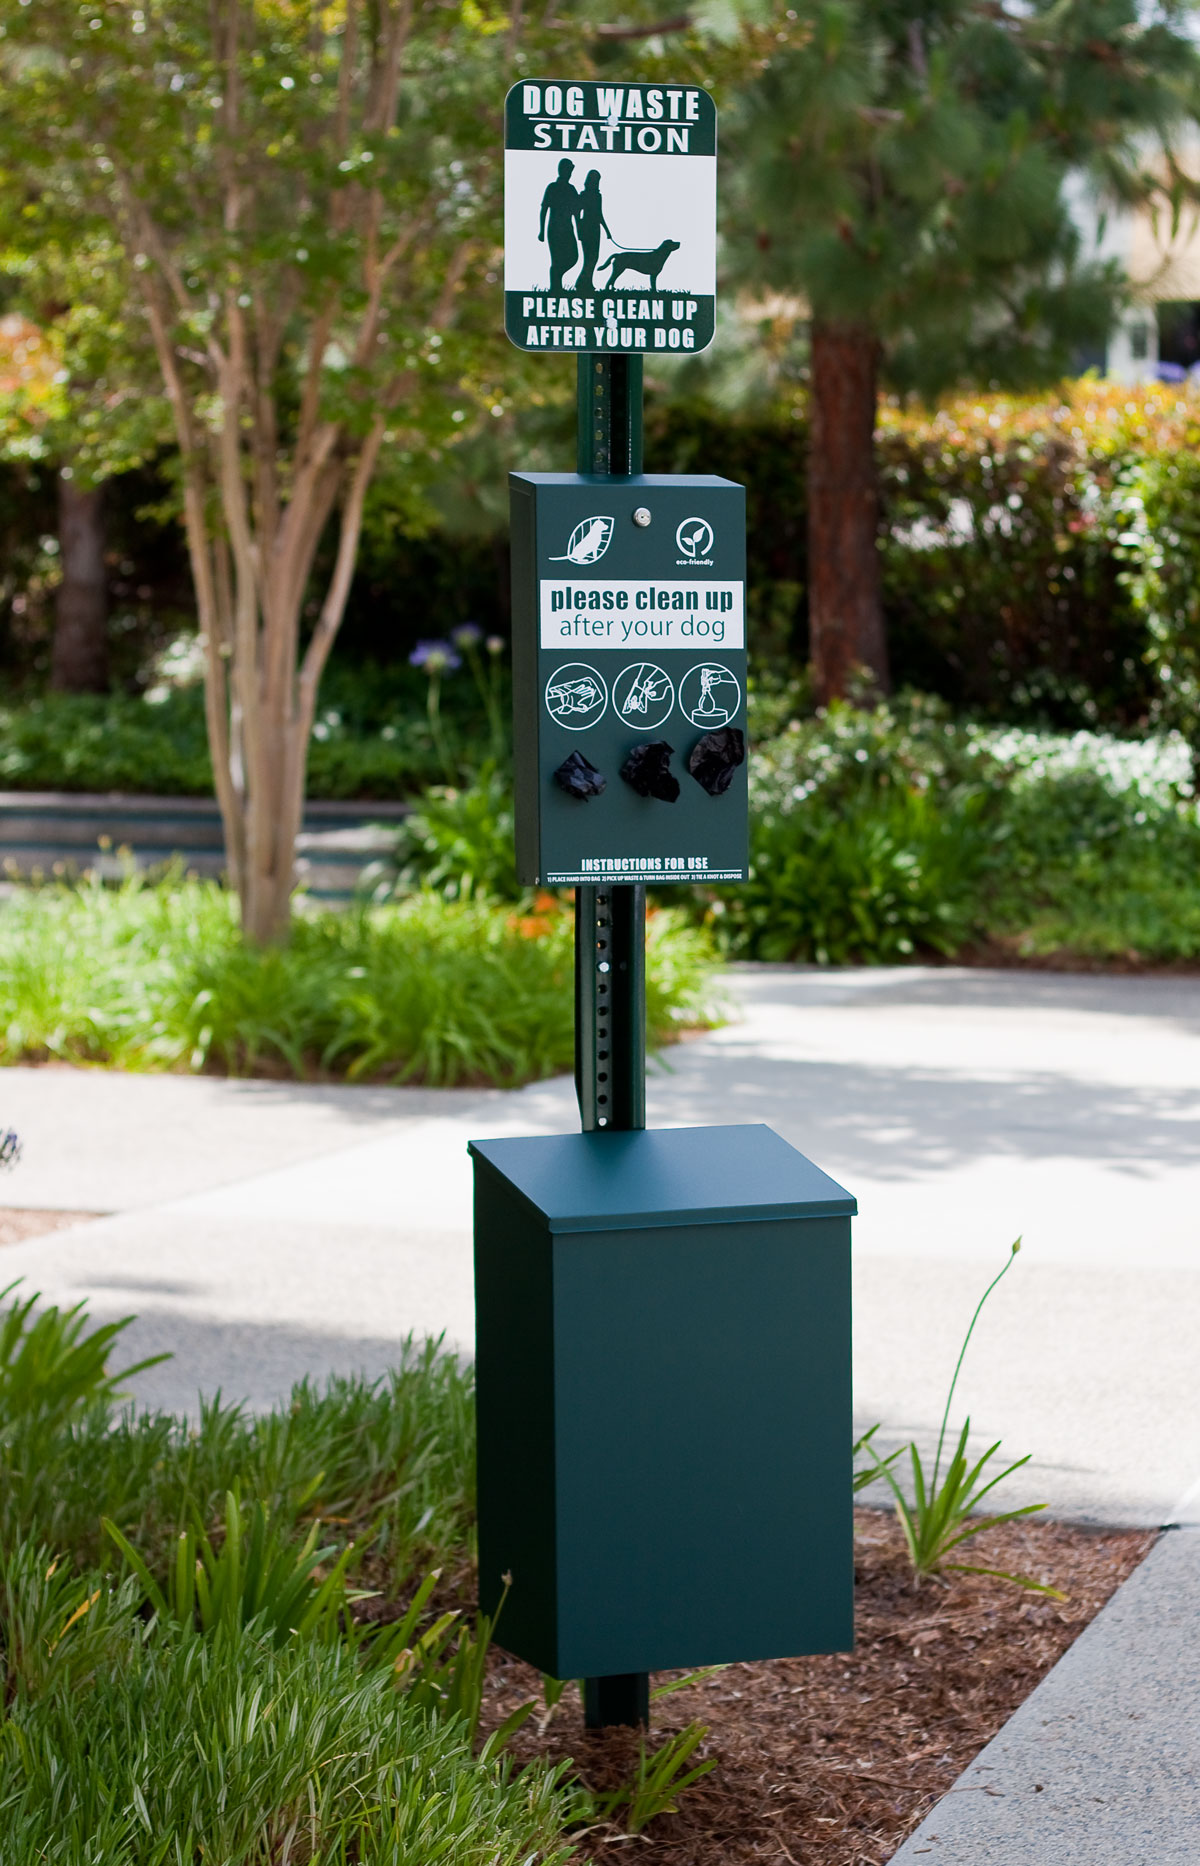 Dog Waste Stations | Dog Park Equipment | Pet Waste Disposal Stations